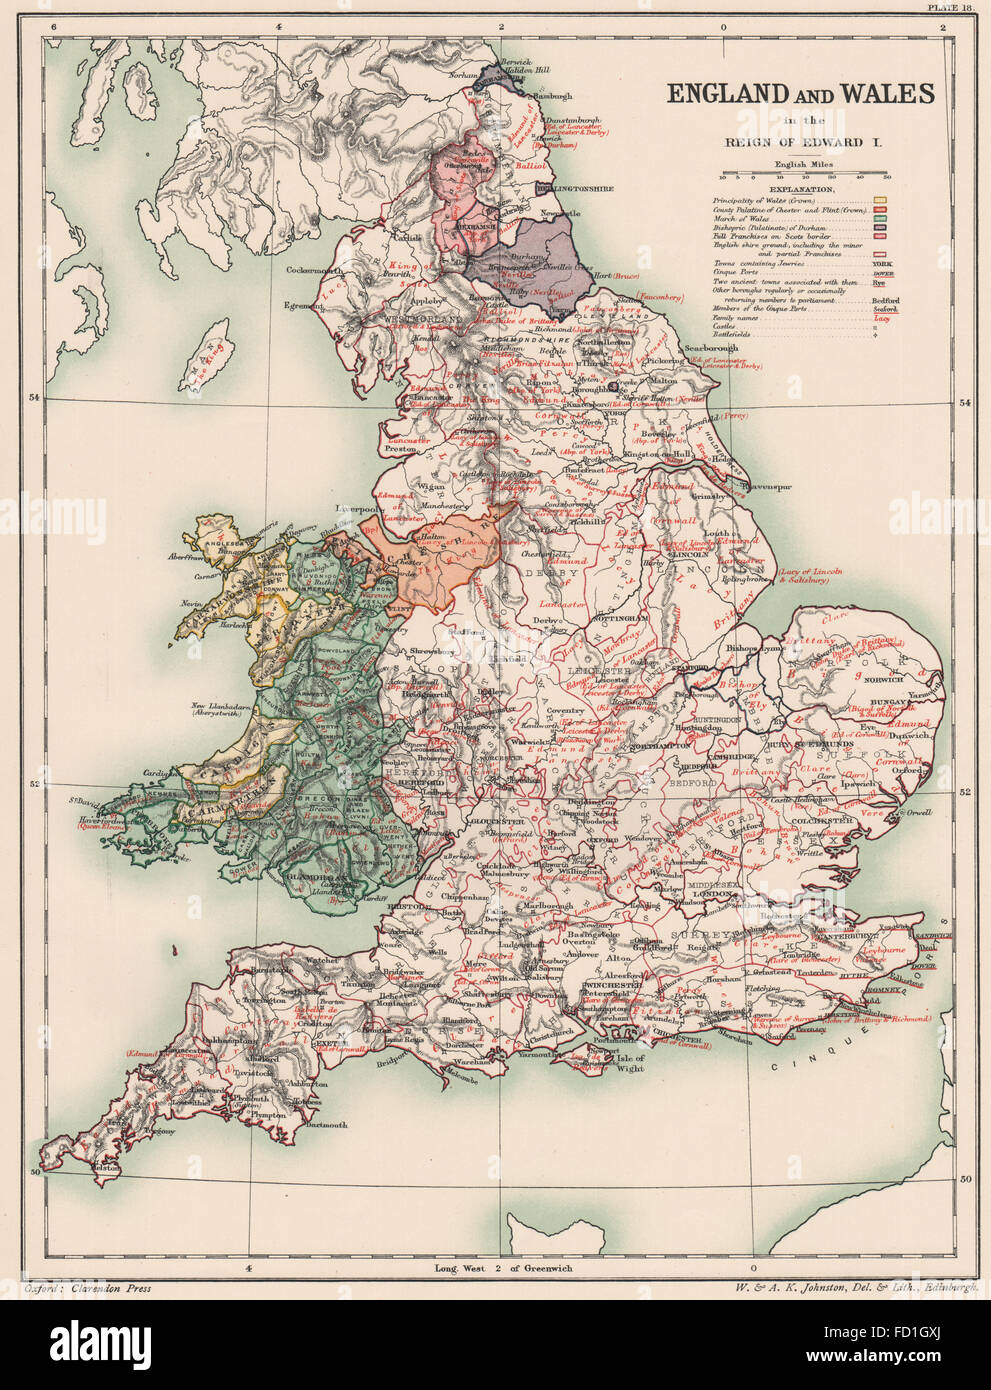 ENGLAND & WALES OF KING EDWARD I: Family names shires battles, 1902 on counties in england, norwich england, hull england, newcastle england, reading england, northumberland england, cumbria england, norfolk england, world map england, wessex england, sunderland england, lincolnshire england, blackpool england, cornwall england, leeds england, broadchurch england, hastings england, castles in england, wiltshire england, surrey england,